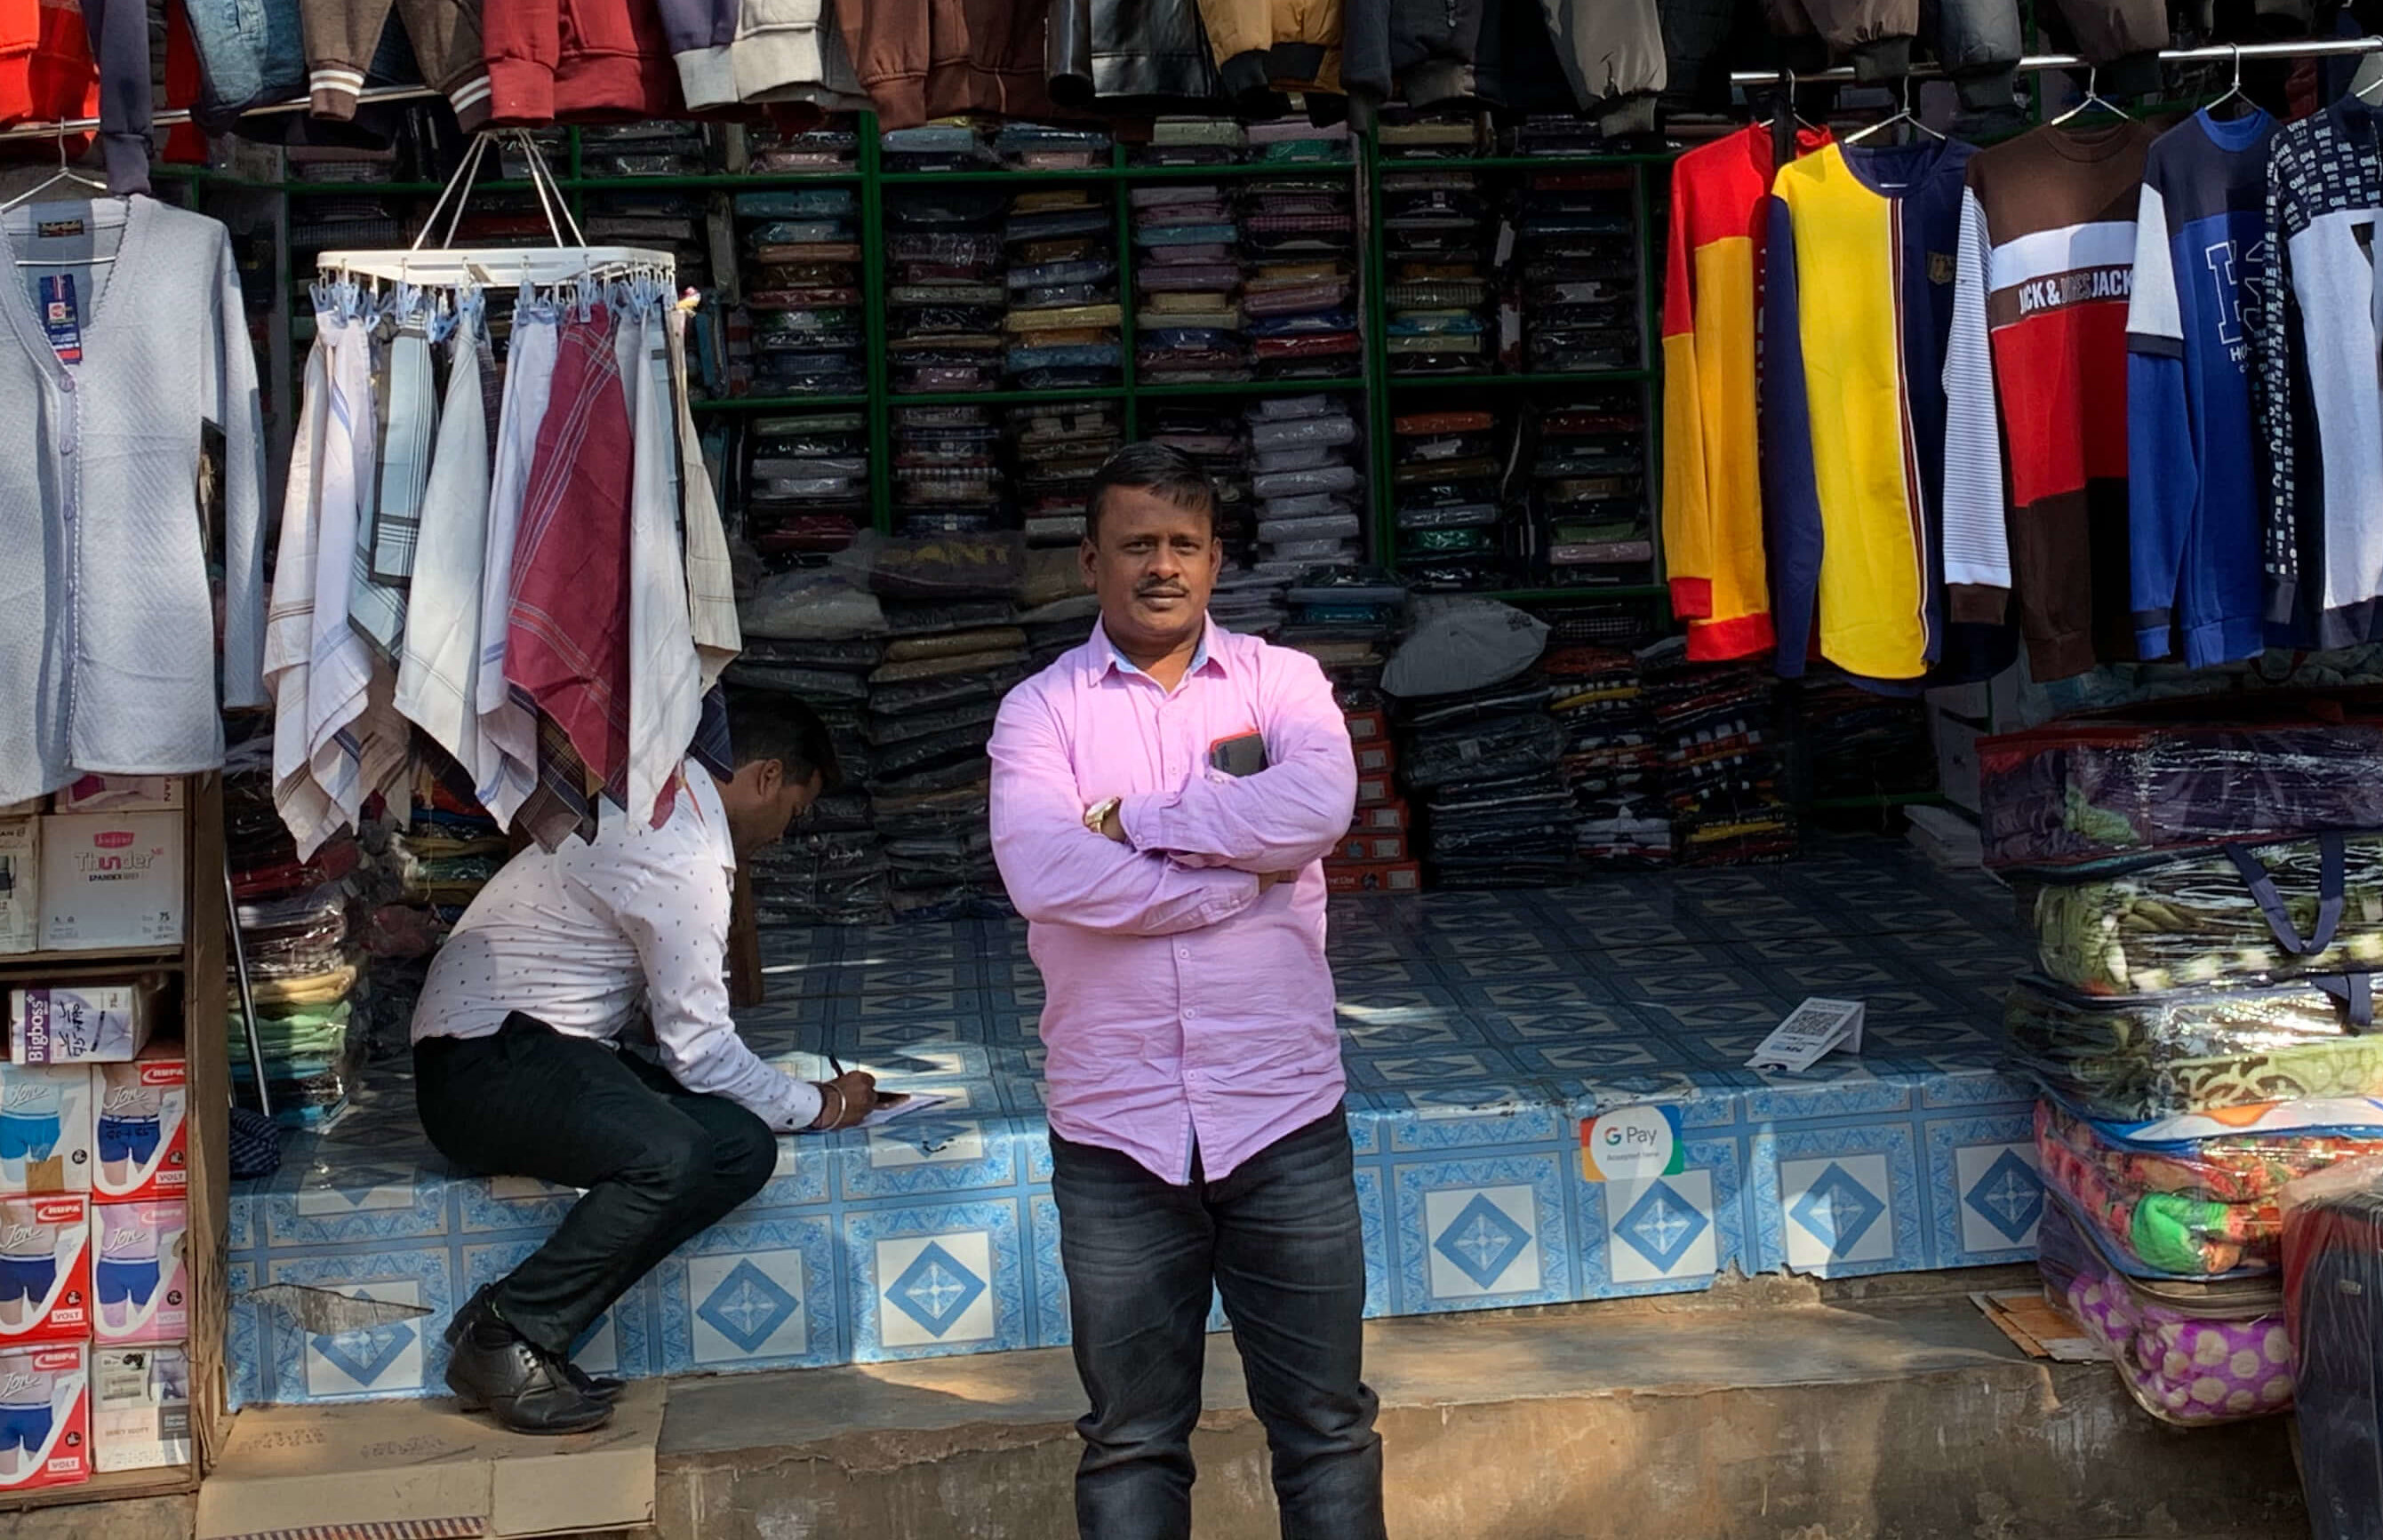 Mohammed Ishaqe and his brother run five clothing stores in the busy market area of Khurda. He currently has two loans from Annapurna Finance (AFPL) and another bank, which he used for purchasing items for his businesses from